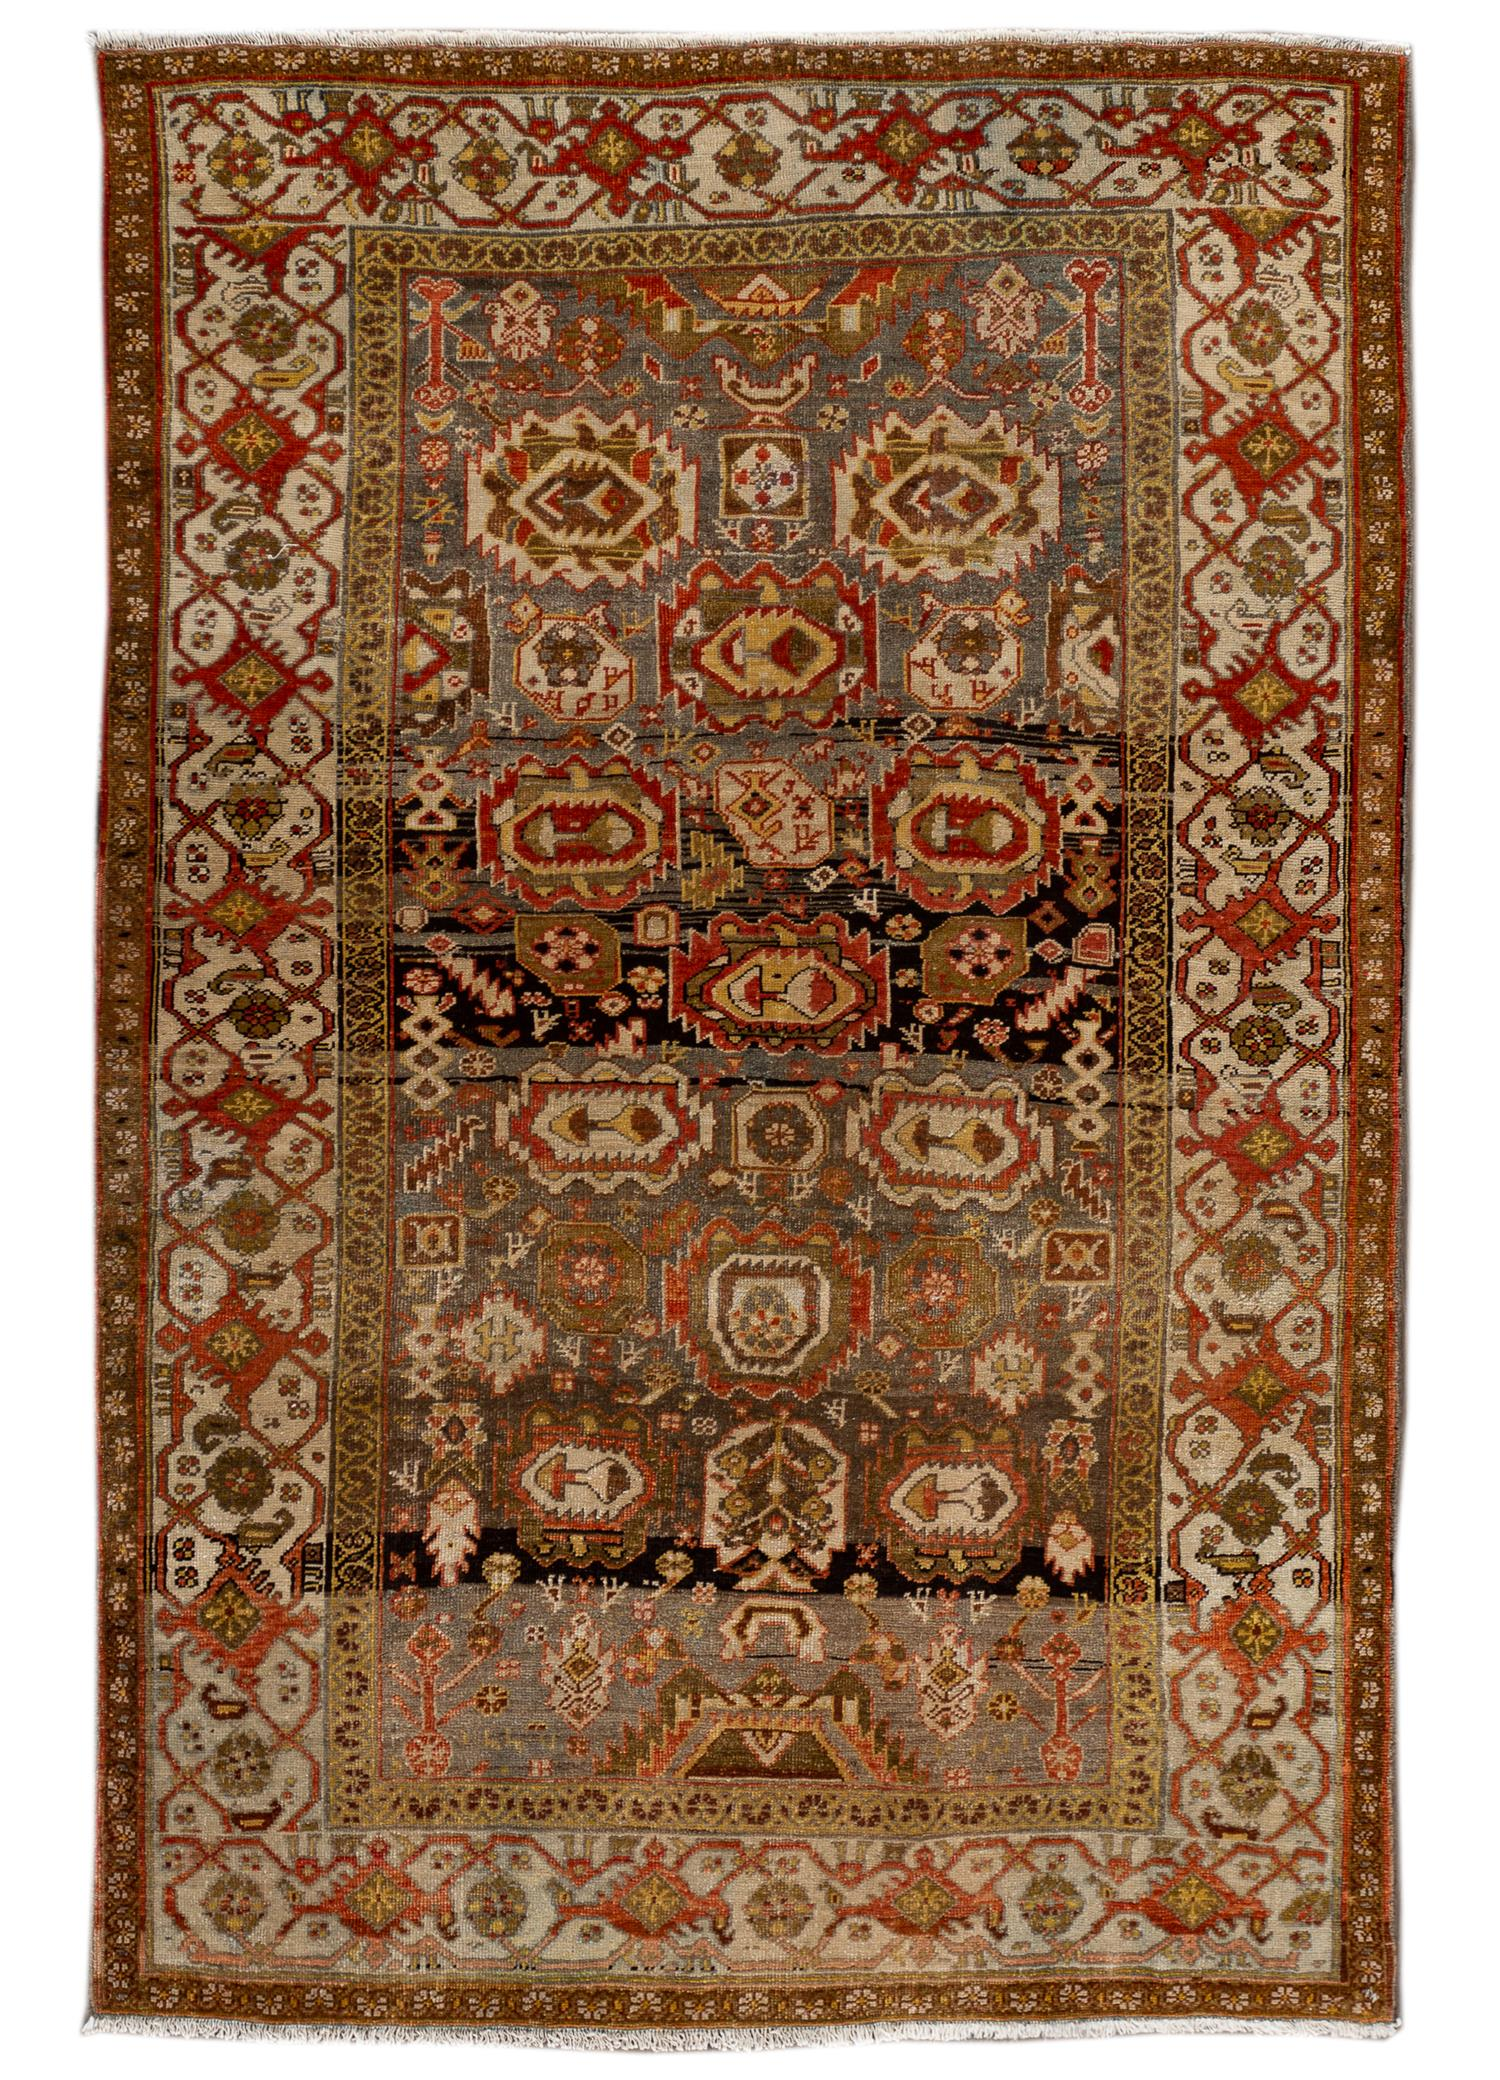 Antique Bidjar Rug, #10235257, 4' x 7'